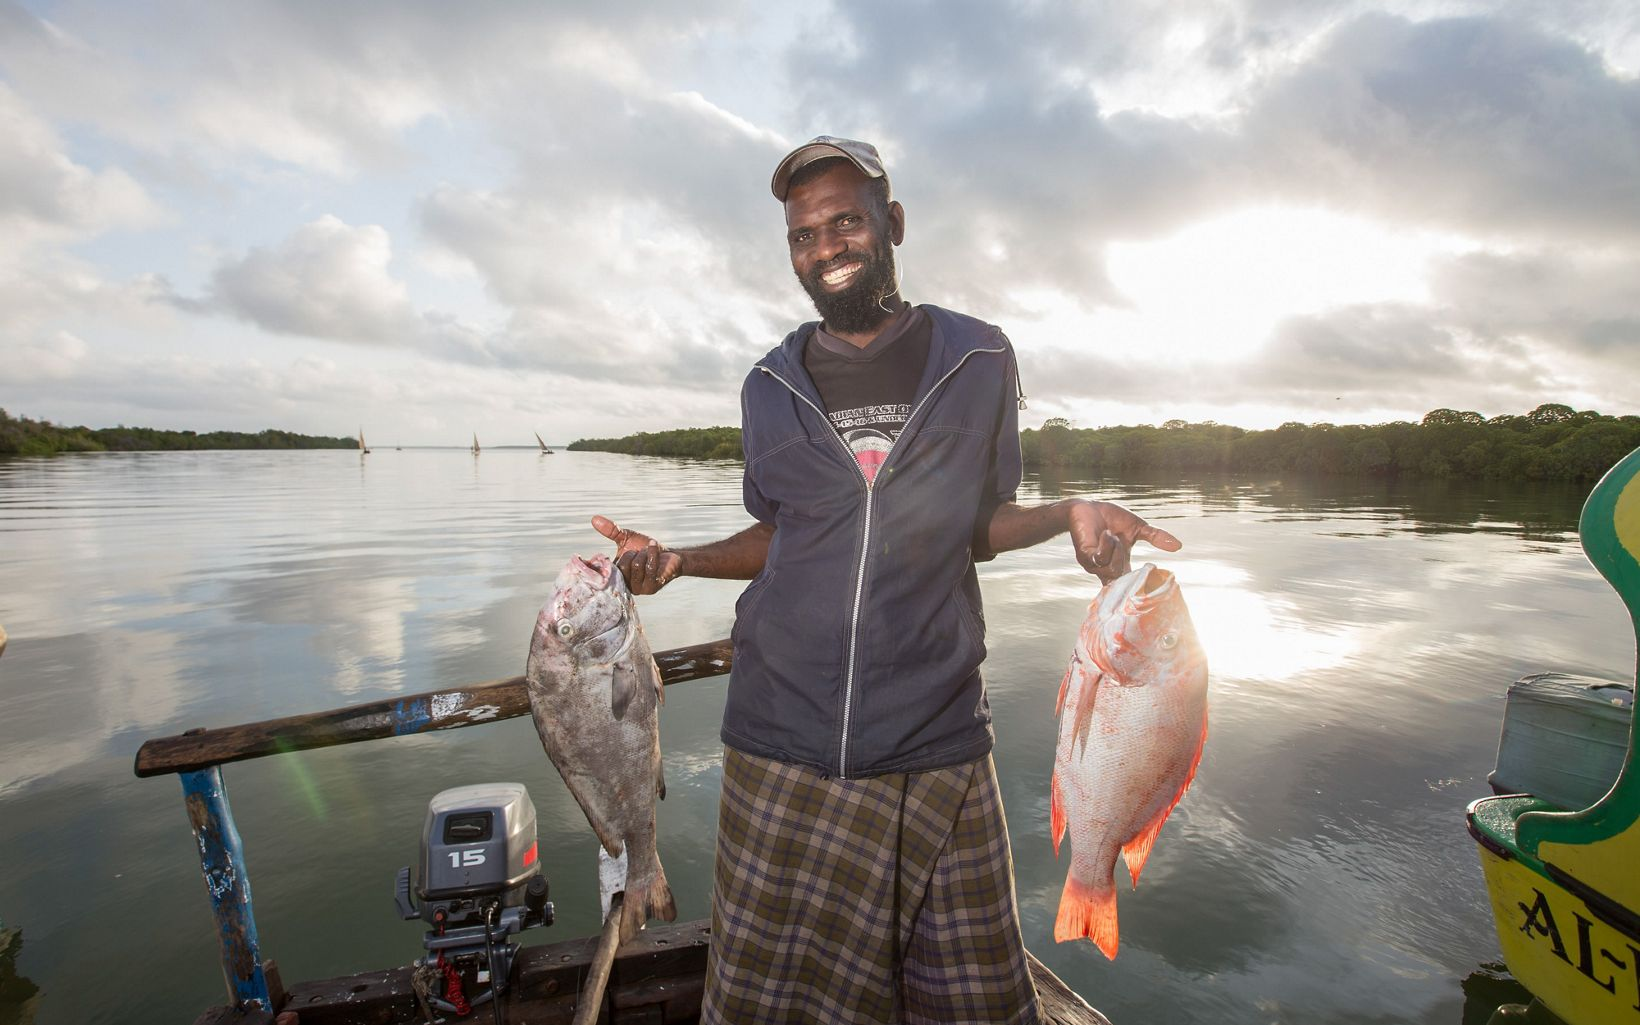 Mohamed is able to fish in the high seas because of a cooler he received for being a part of the OceanWORKS program. This allows him to catch larger fish.